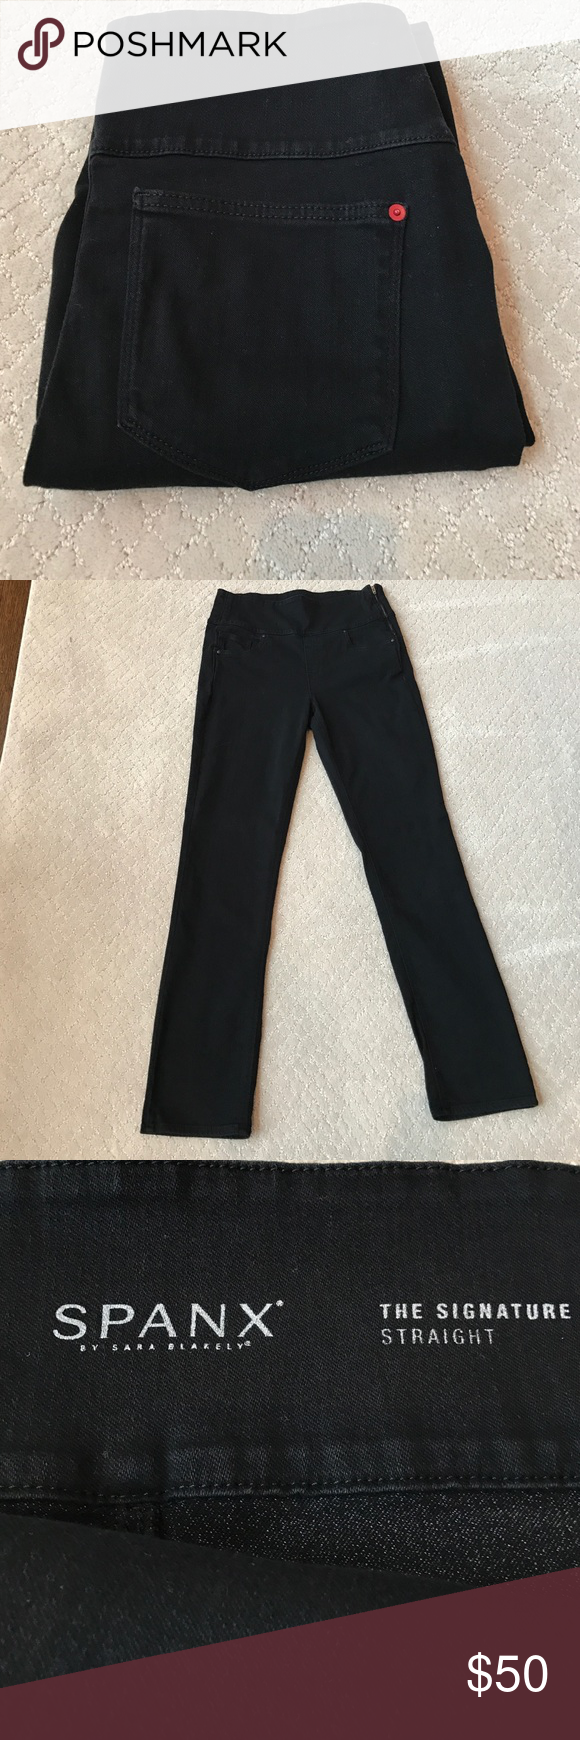 "Spanx Denim Spanx ""The Signature Straight"" jeans with wide waist band. Side zip waist. Black. Size 31. Fabric content: 93% cotton, 6% polyester, 1% Lycra. Rough measurements: 31.5"" inseam, 11.75"" rise. Excellent condition. Worn once or twice - the high rise just didn't work for me. SPANX Jeans"